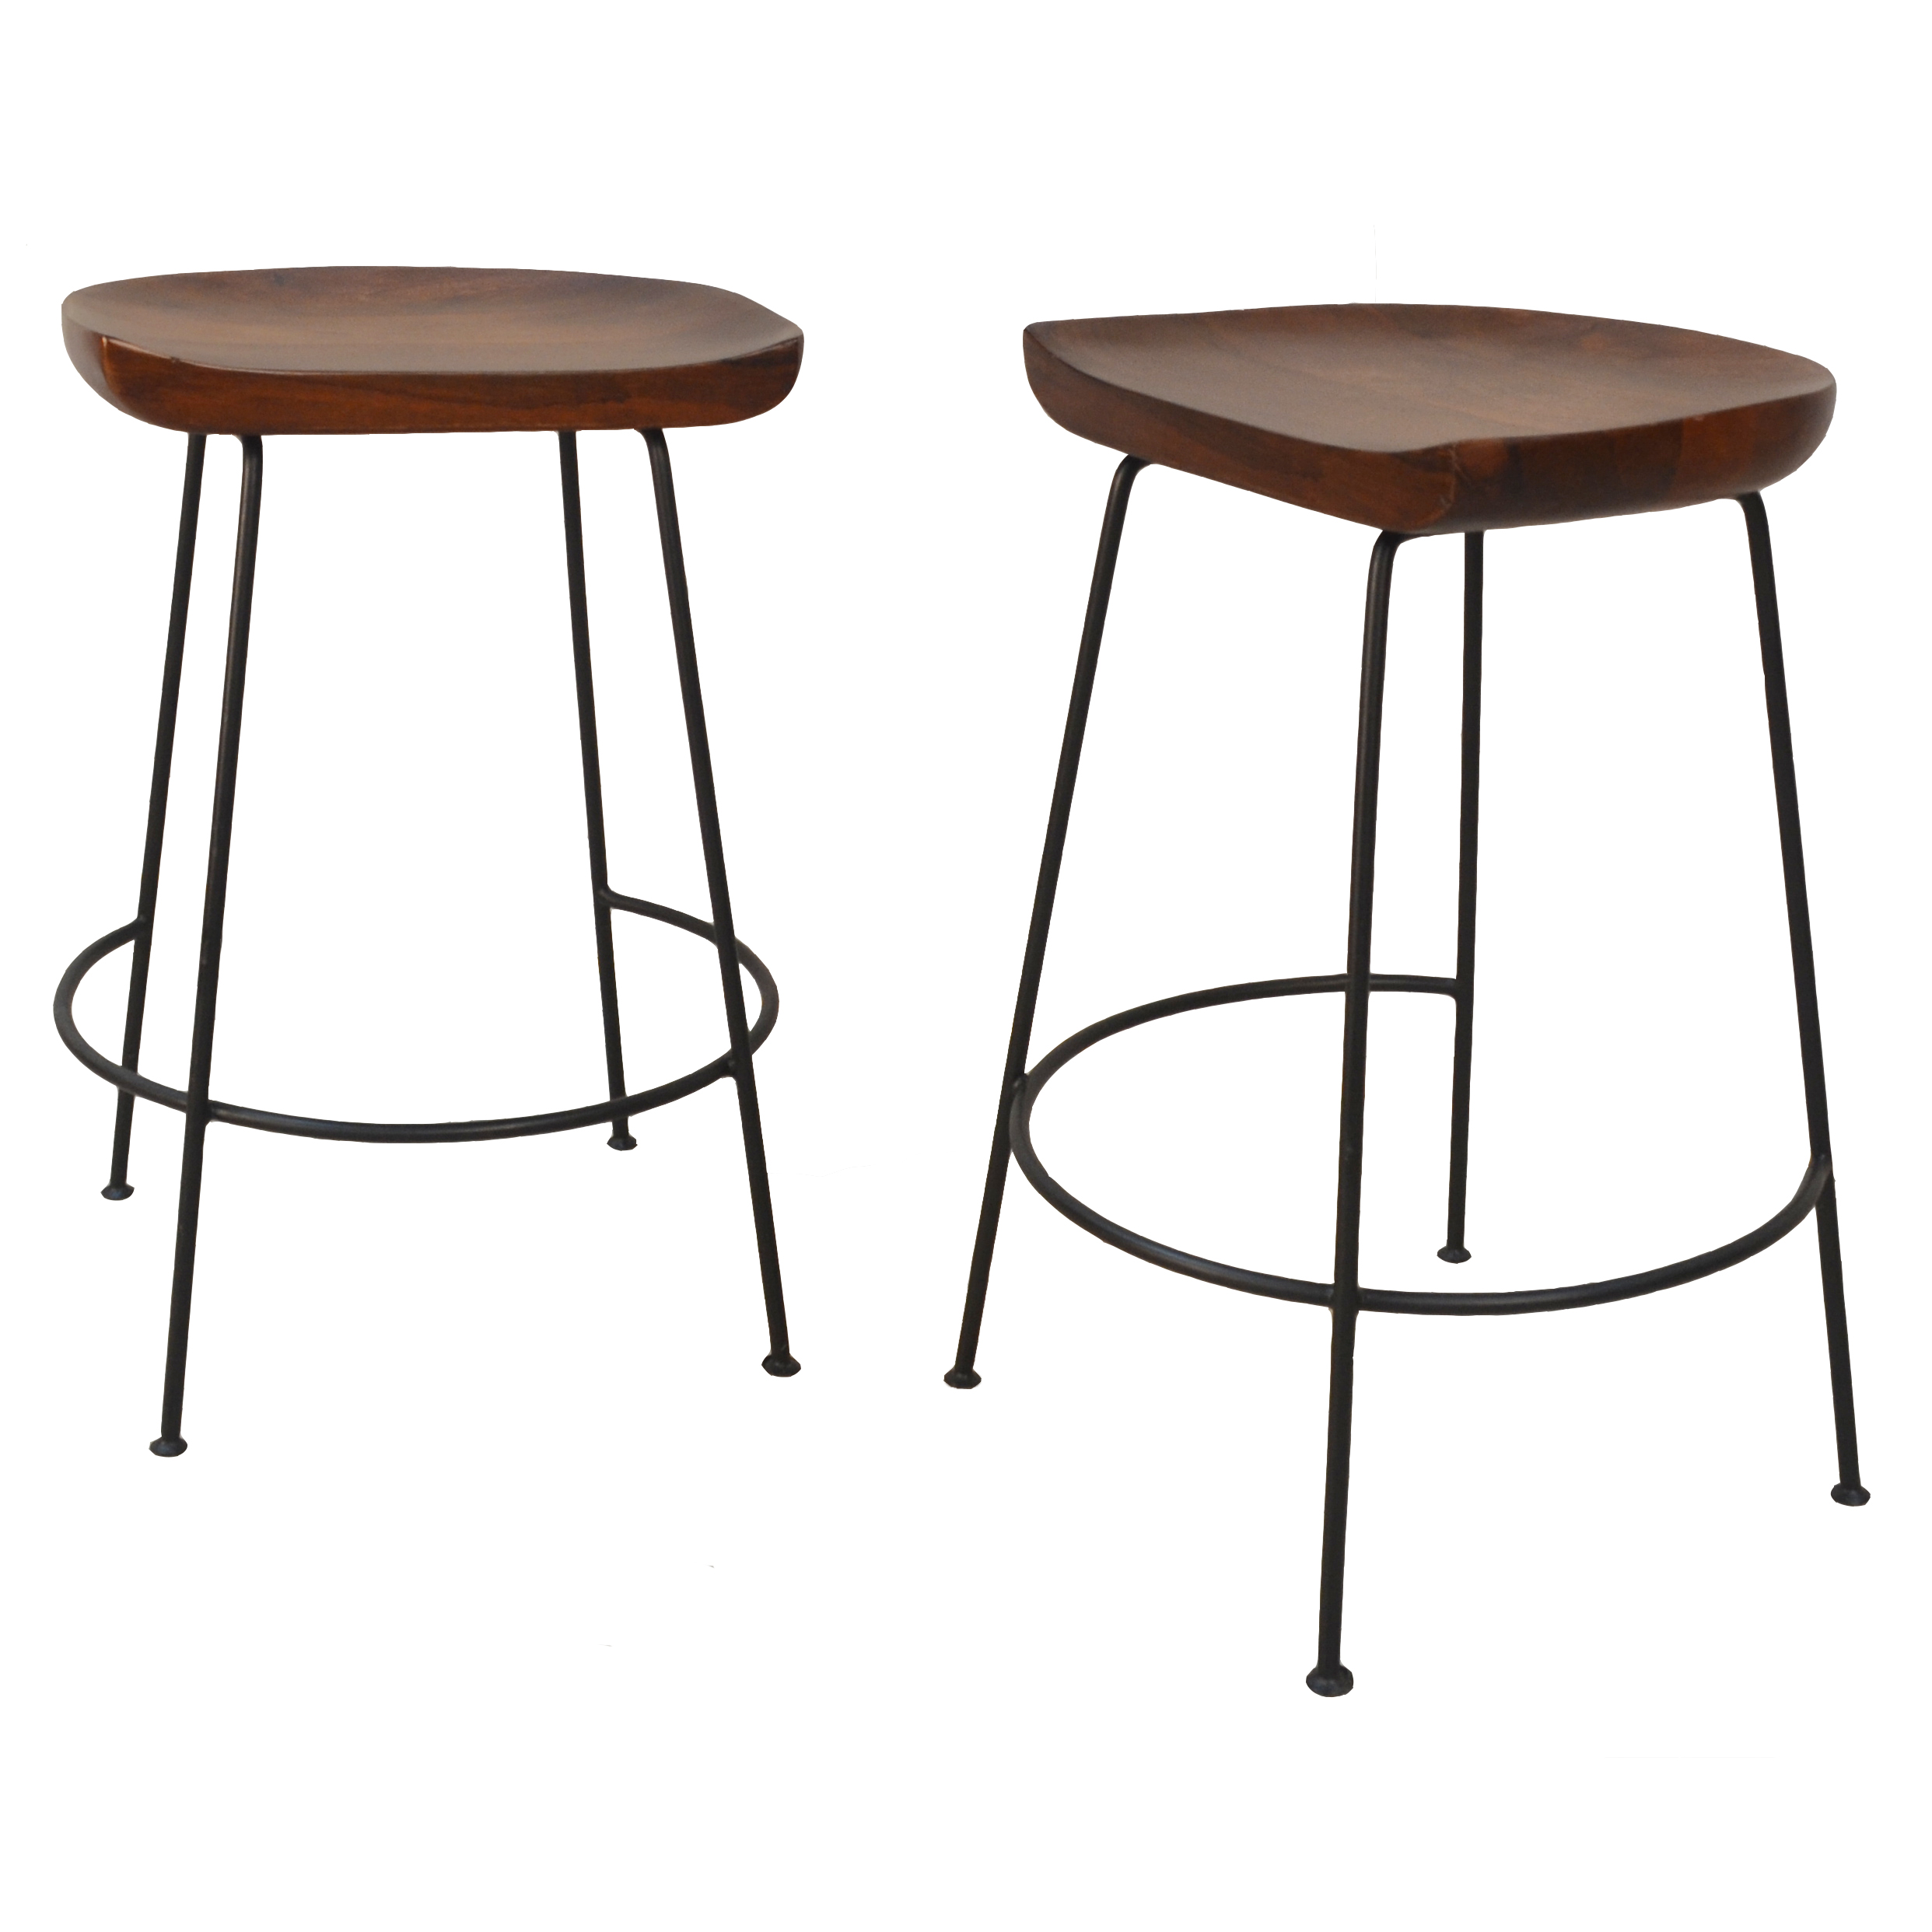 "Diya 24"" Counter Stool Set of 2, Chestnut/Black"